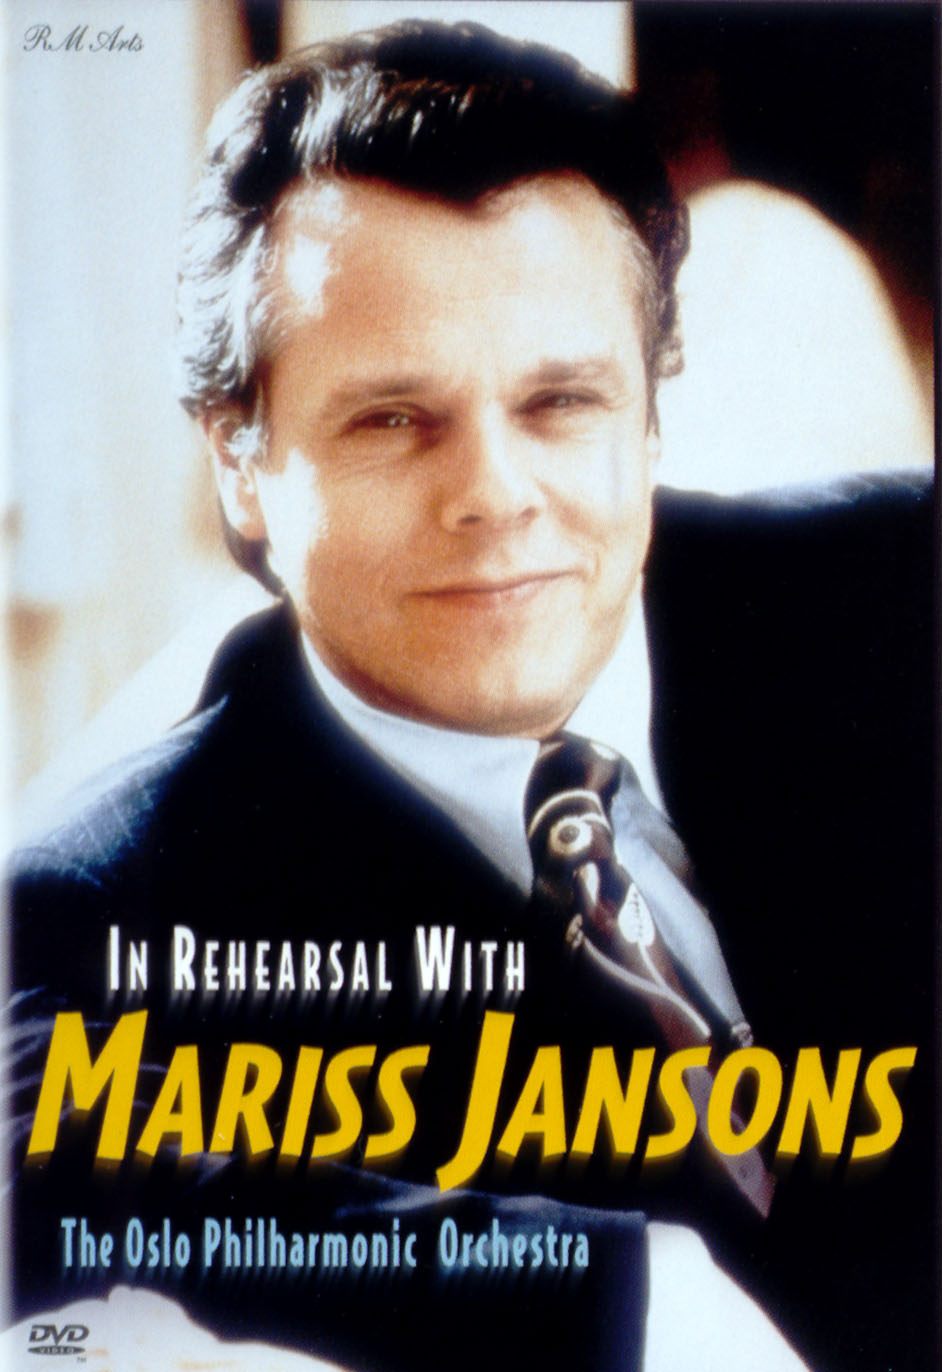 In Rehearsal with Mariss Jansons